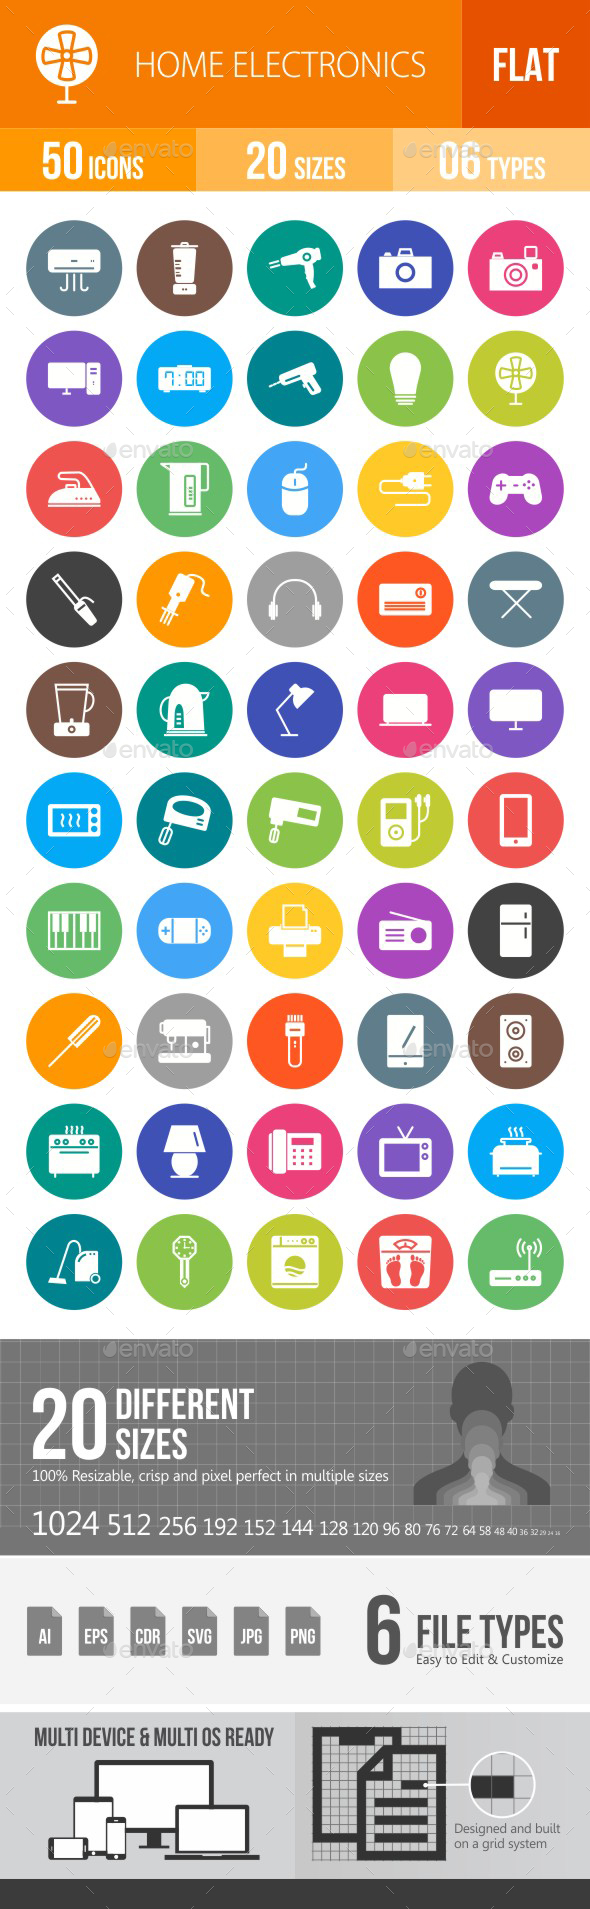 Home Electronics Flat Round Icons - Icons